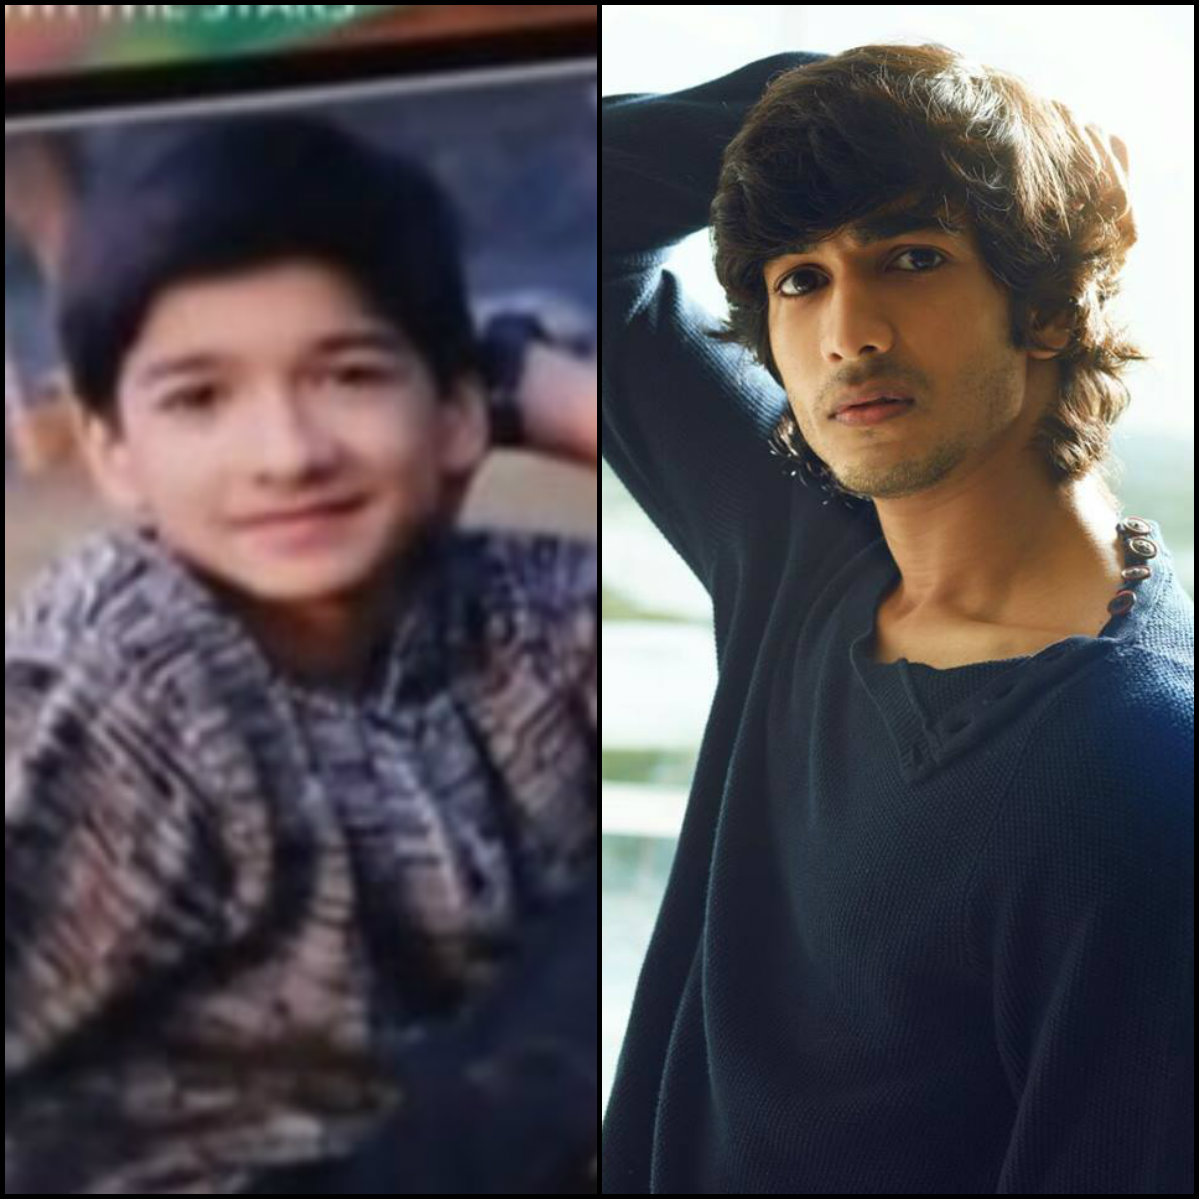 How Adorable These Television Actors Looked As Kids!